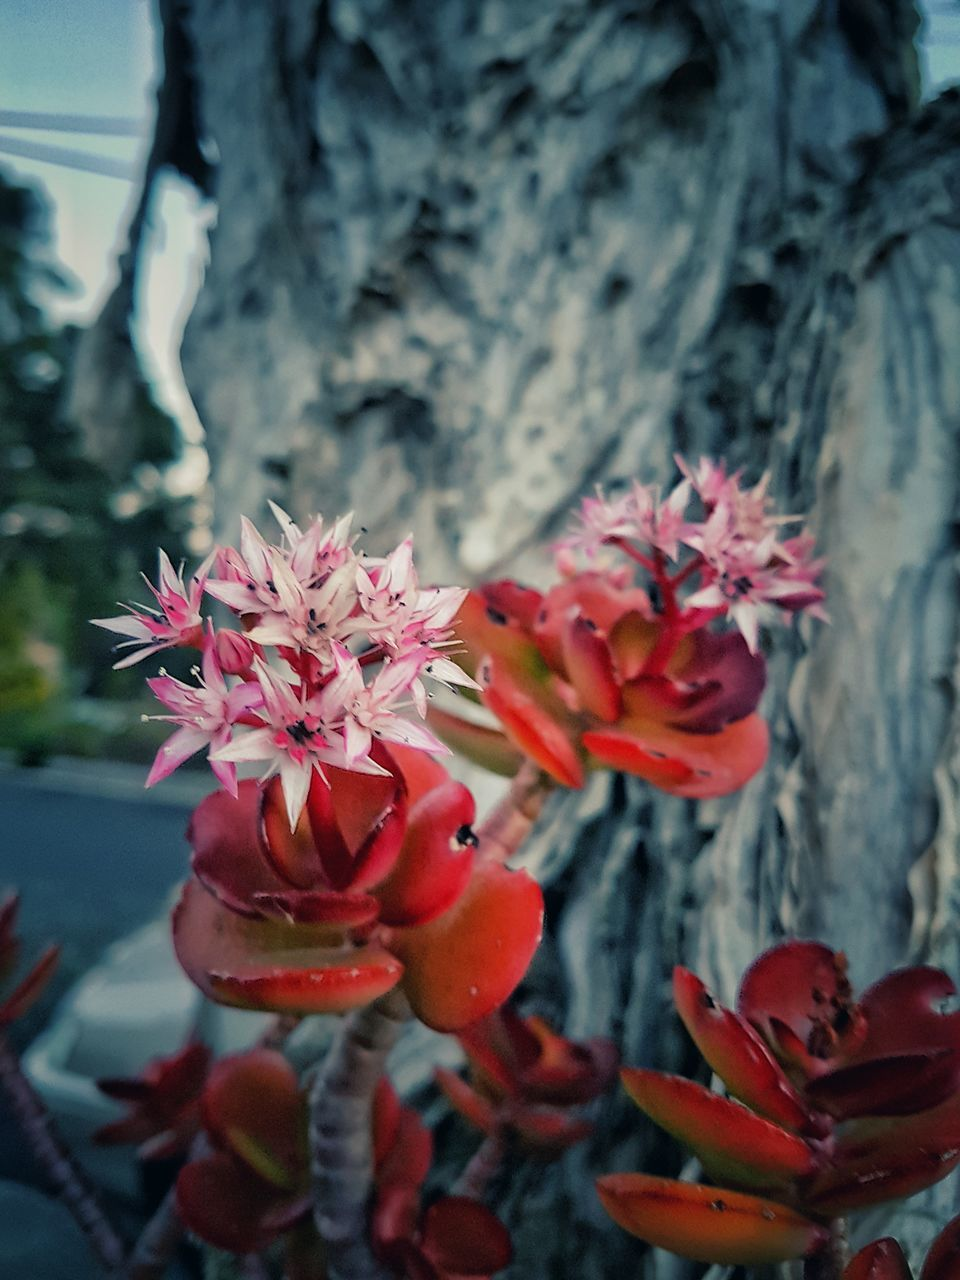 flower, petal, beauty in nature, fragility, nature, no people, growth, flower head, close-up, day, red, outdoors, plant, freshness